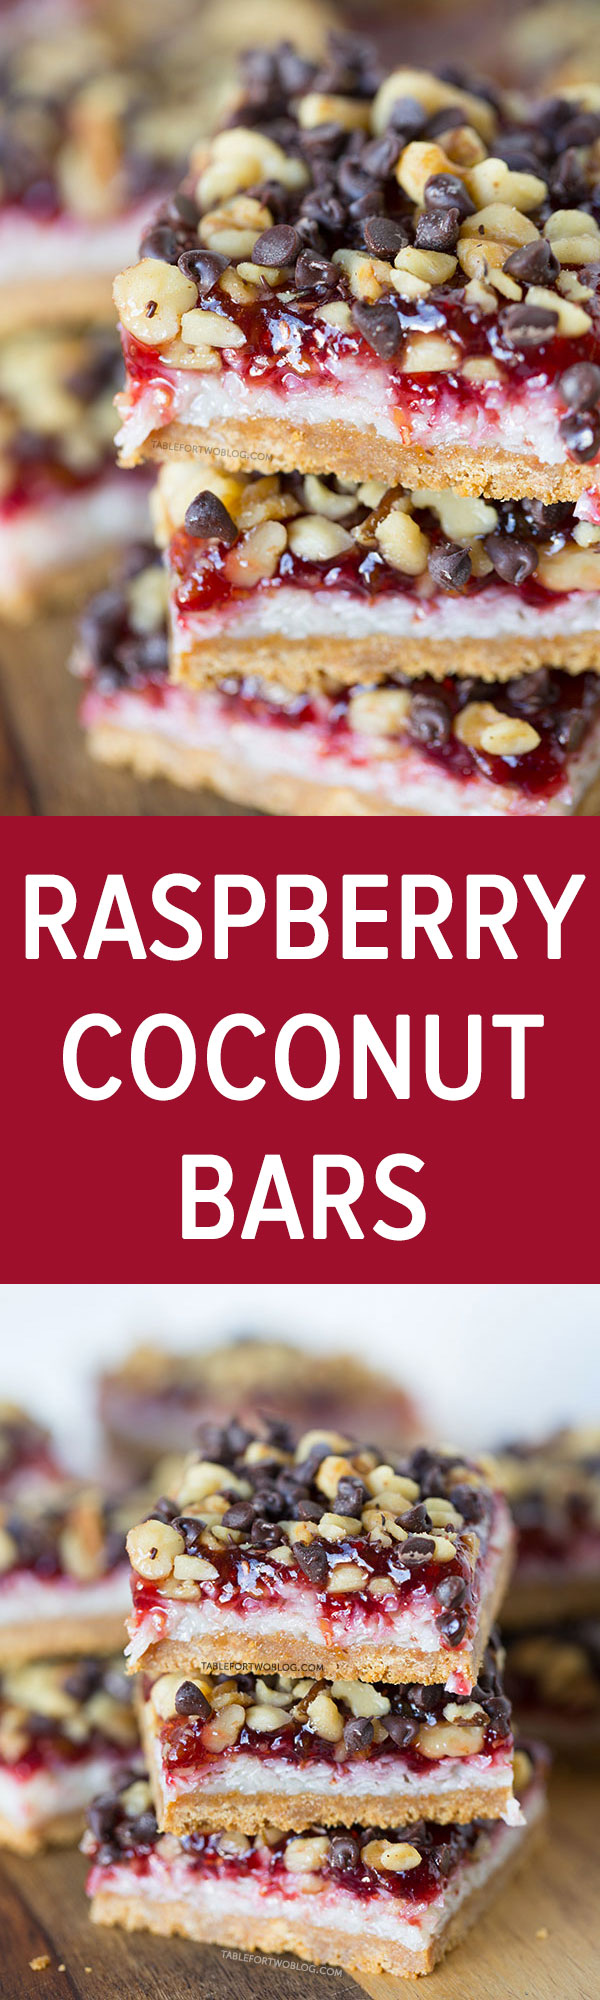 These raspberry coconut bars are every coconut and raspberry lover's dream! It will satisfy any sweet tooth! Recipe on tablefortwoblog.com